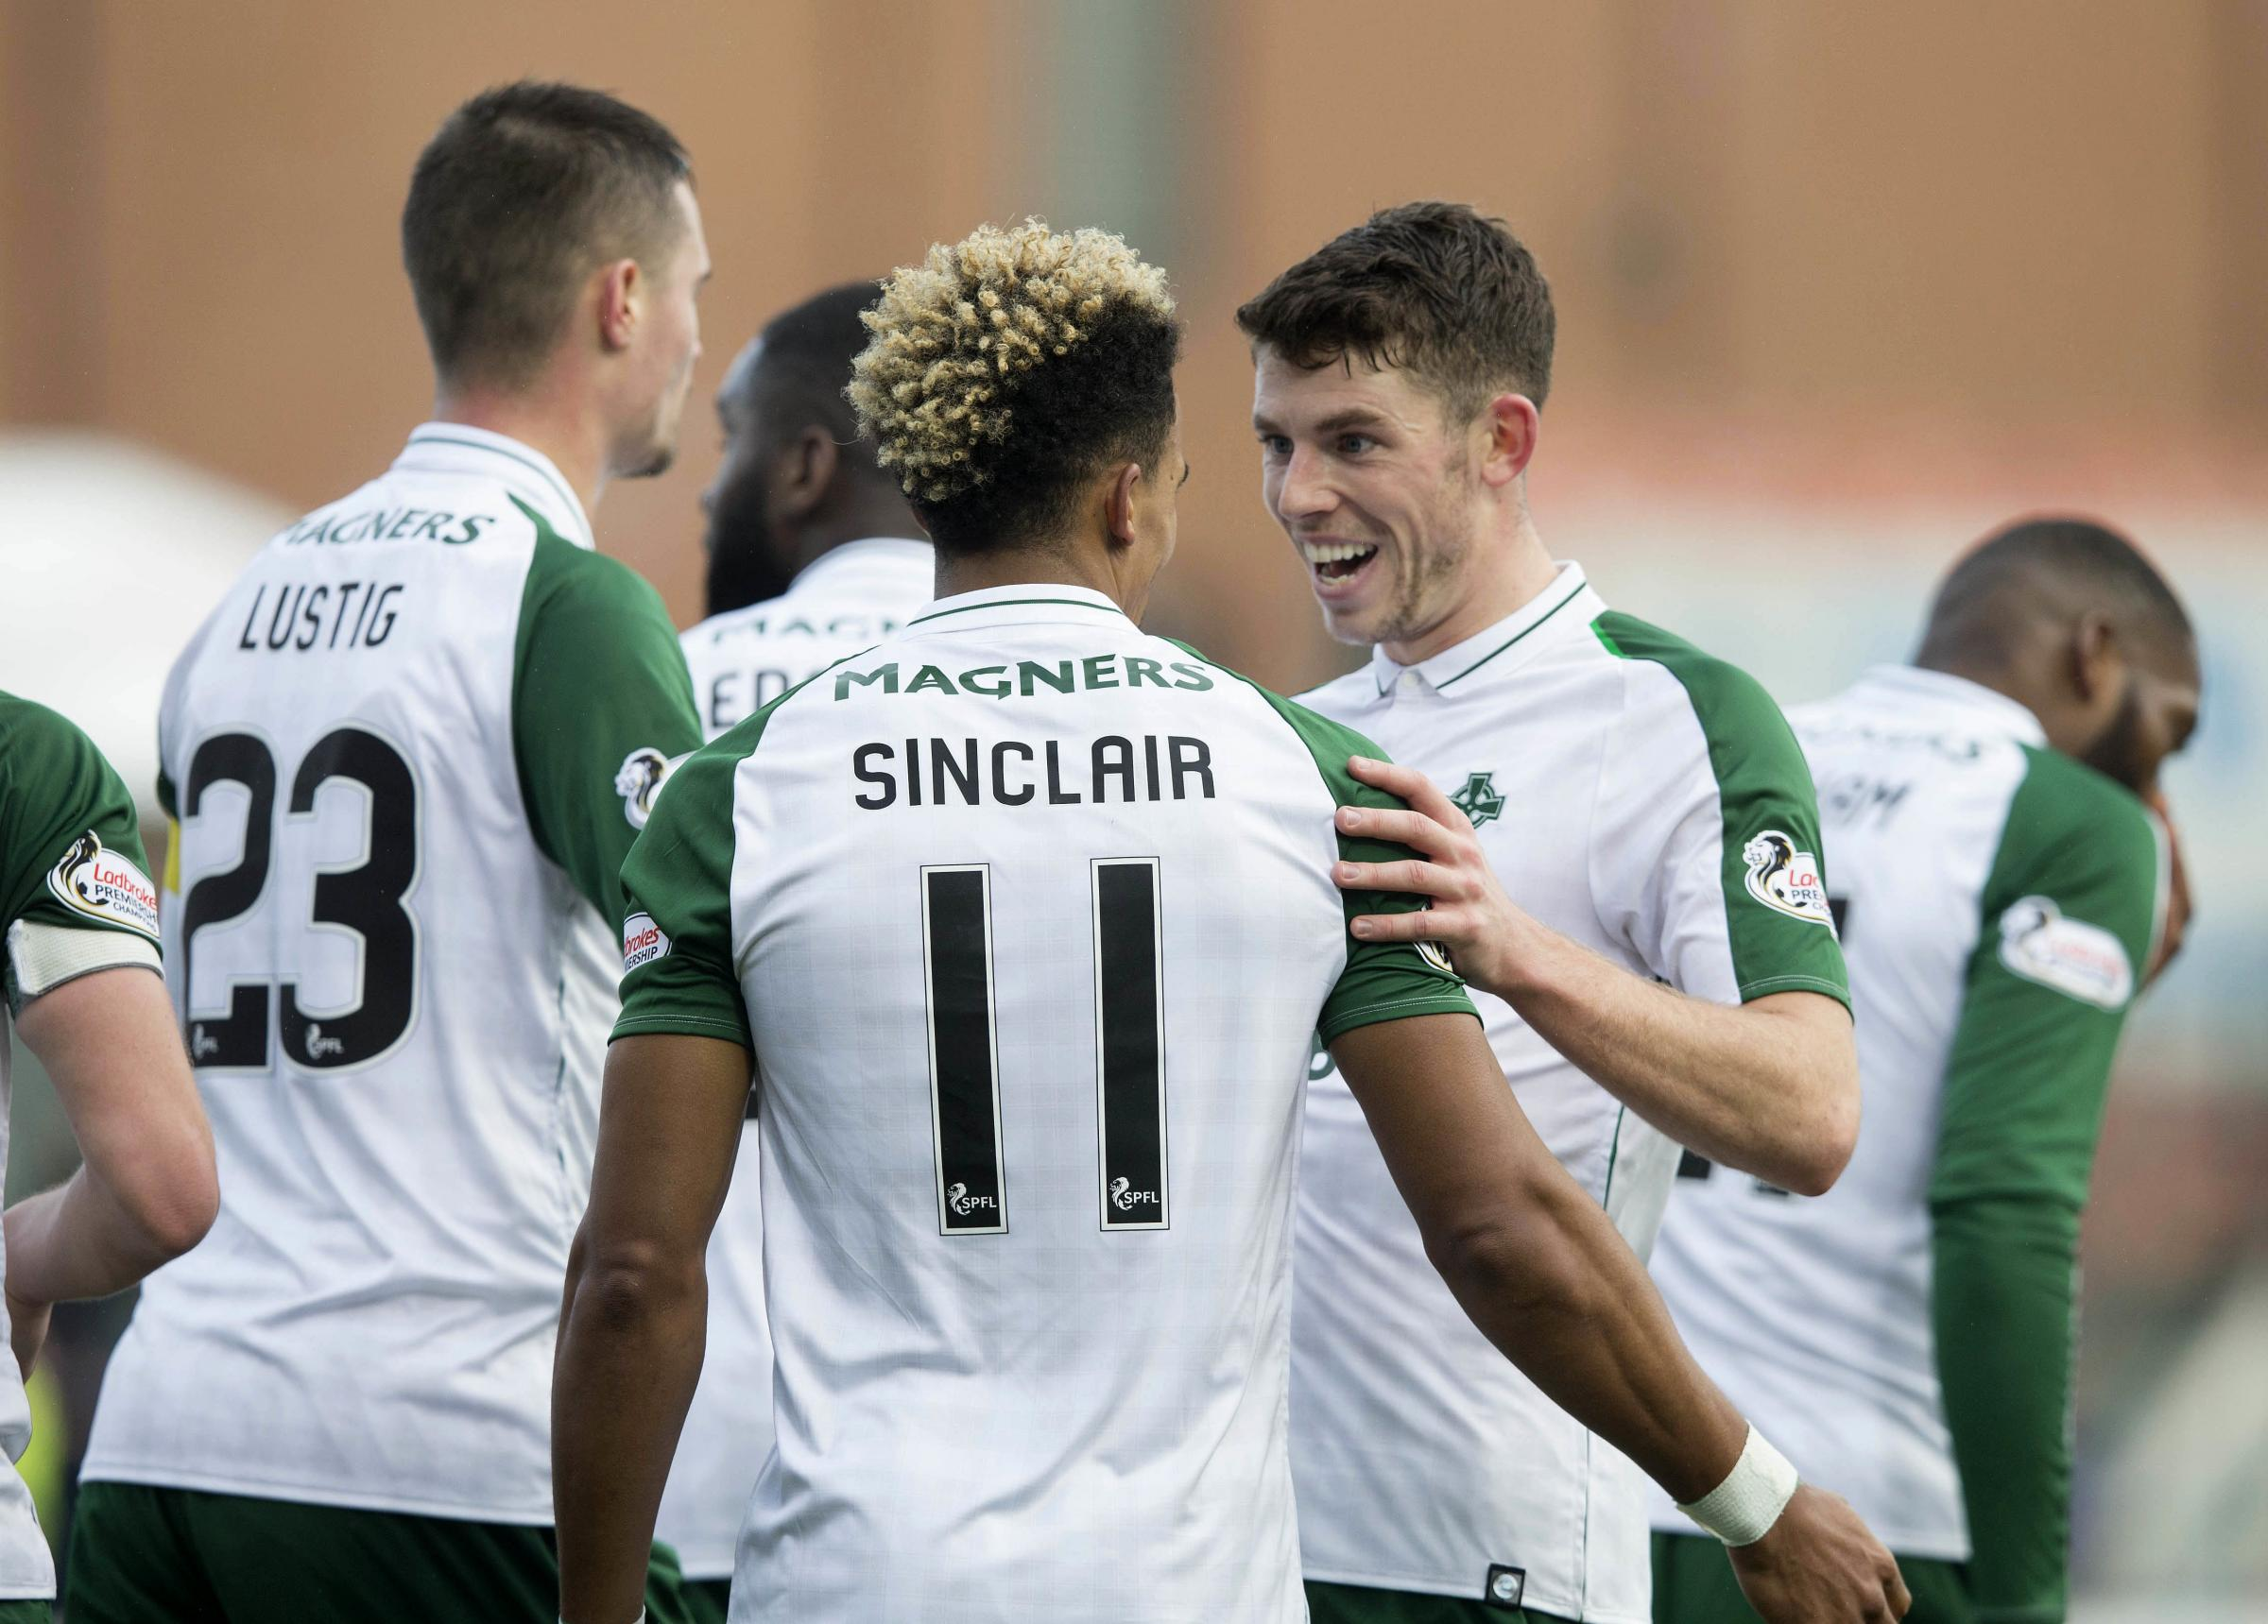 Celtic�s Scott Sinclair (back to camera) celebrates scoring his side's second goal of the game with Ryan Christie during the Ladbrokes Scottish Premiership match at Hope CBD Stadium, Hamilton. PRESS ASSOCIATION Photo. Picture date: Saturday No